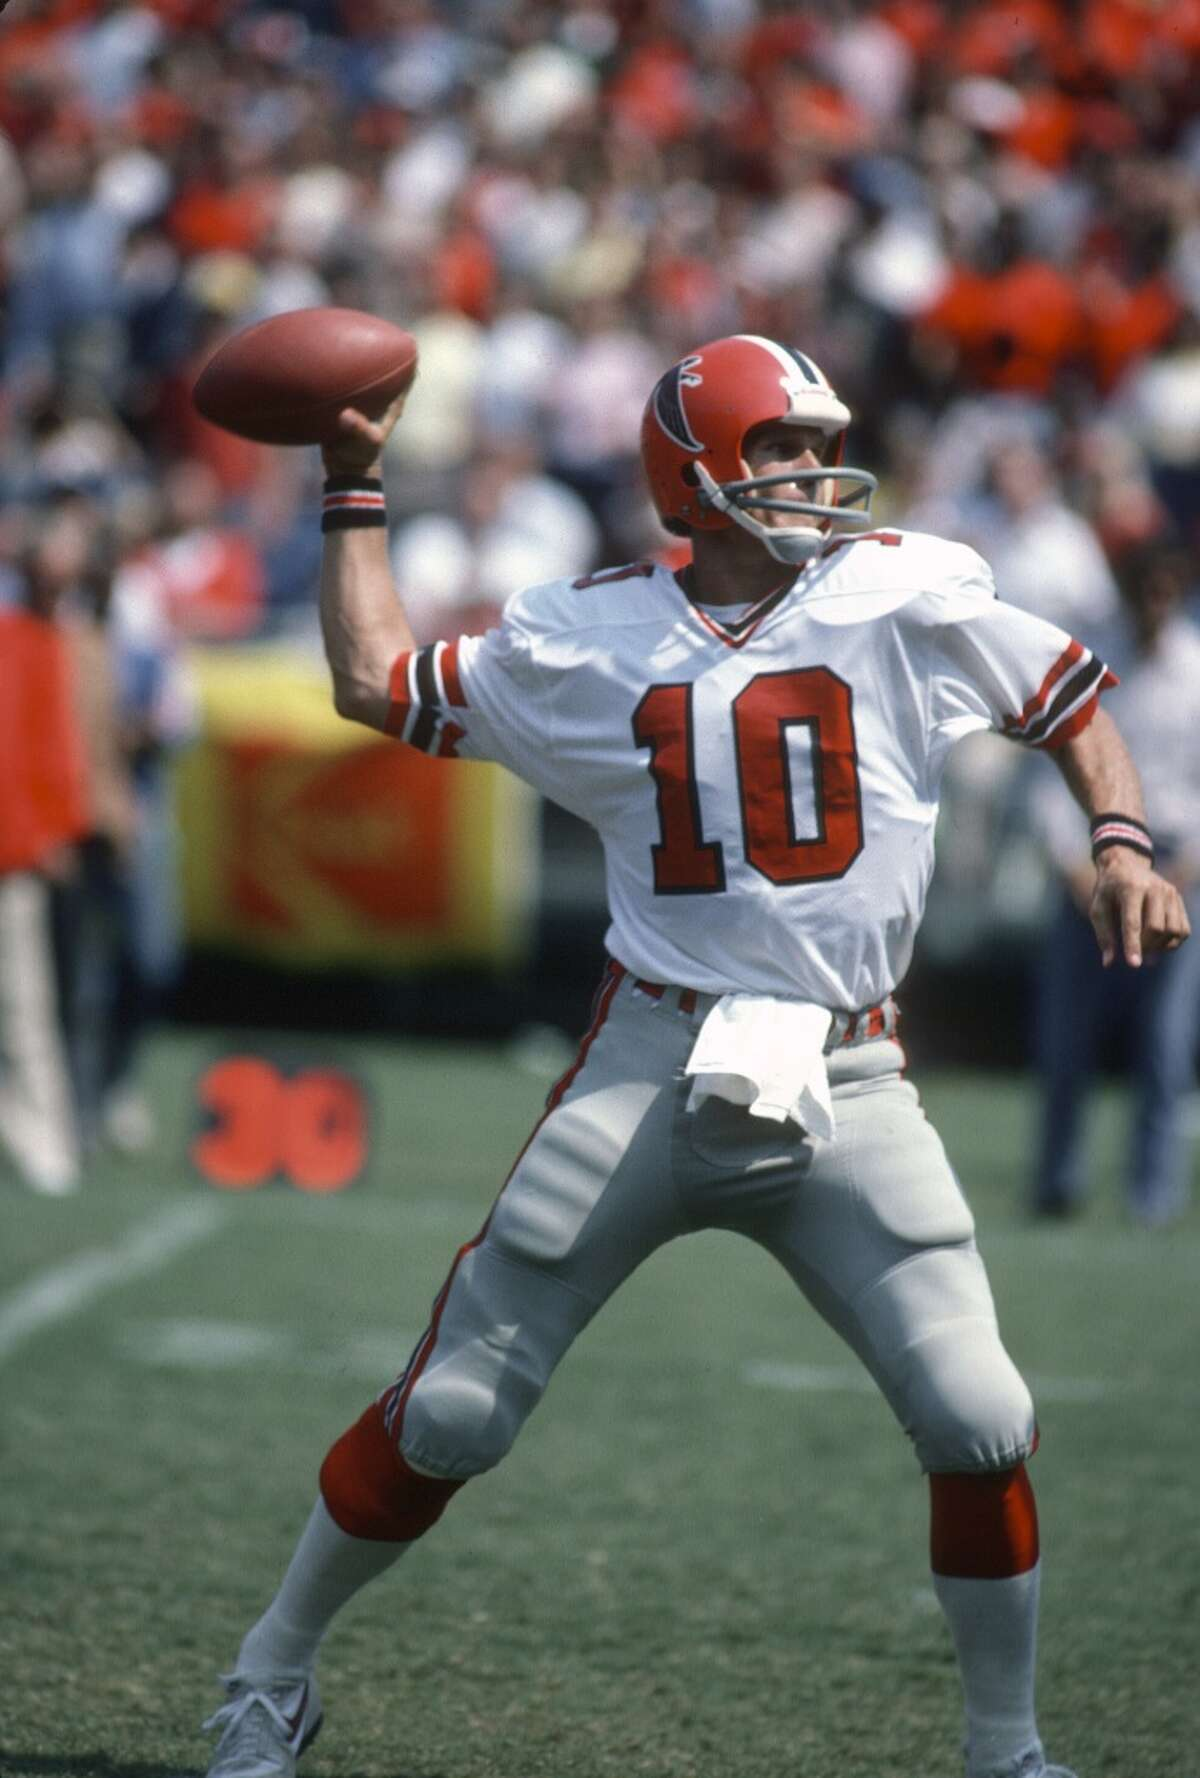 """Nov. 12, 1979: Falcons 20, Saints 17 In the final seconds, Steve Bartkowski's pass was tipped by teammate Wallace Francis to Alfred Jackson, who ran the last 10 yards on a play the Falcons called """"Big Ben,"""" aka the play that beats the clock."""